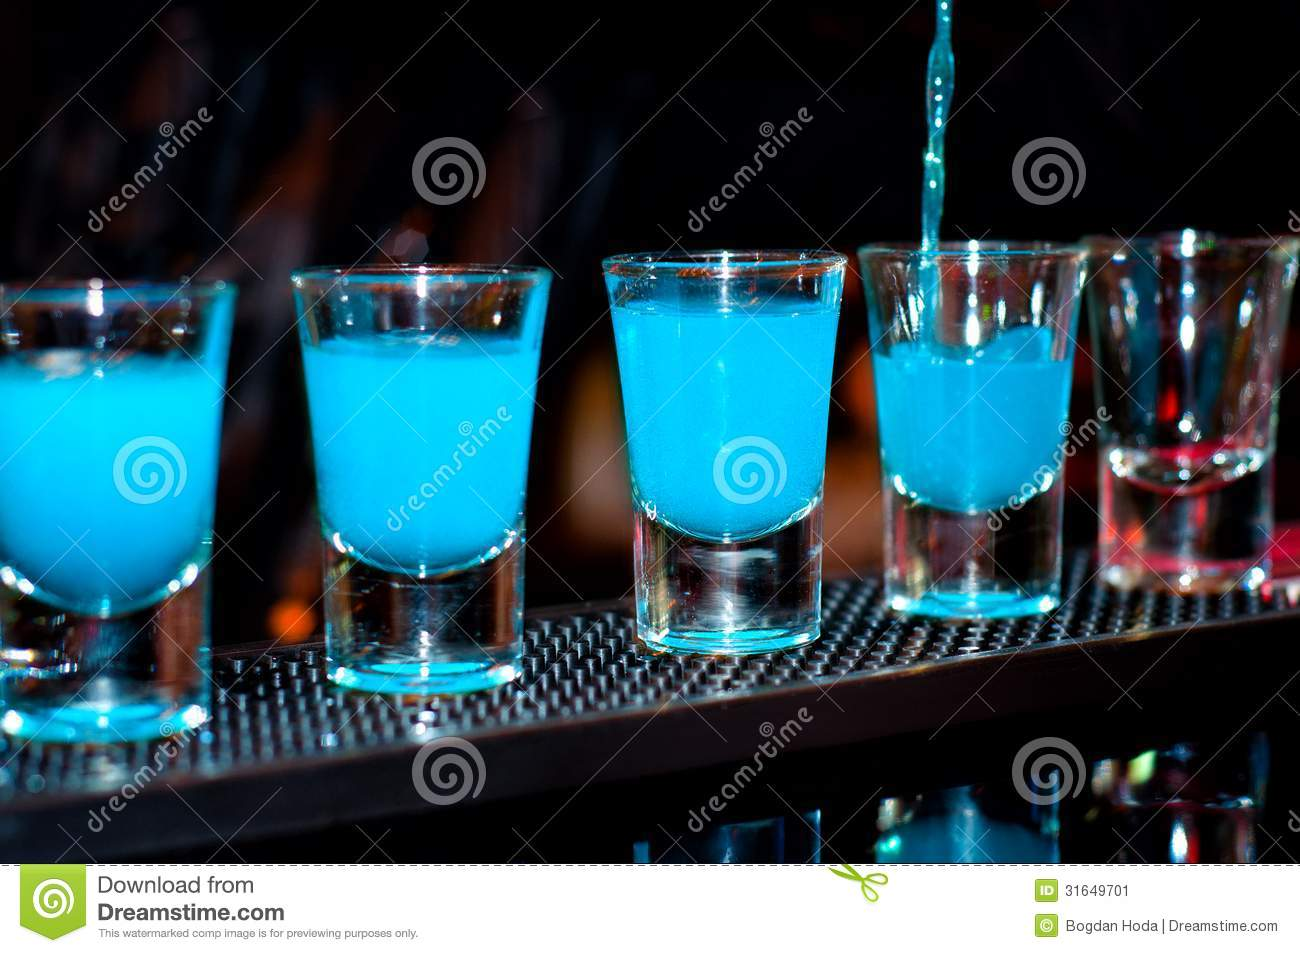 Bartender pours blue alcoholic drink into small glasses on bar